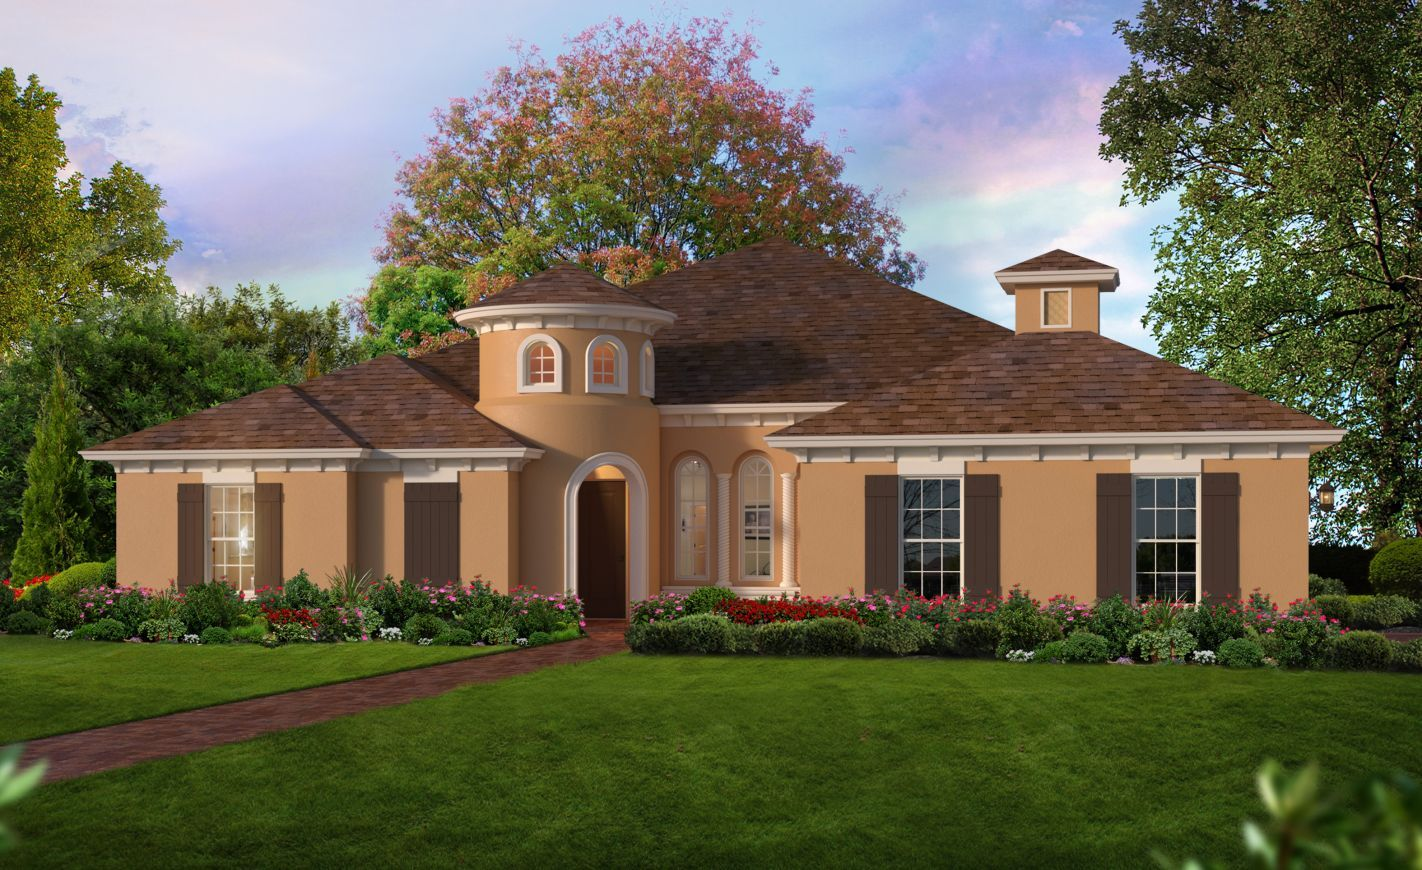 32141 New Construction Homes & Plans | 307 Homes | NewHomeSource